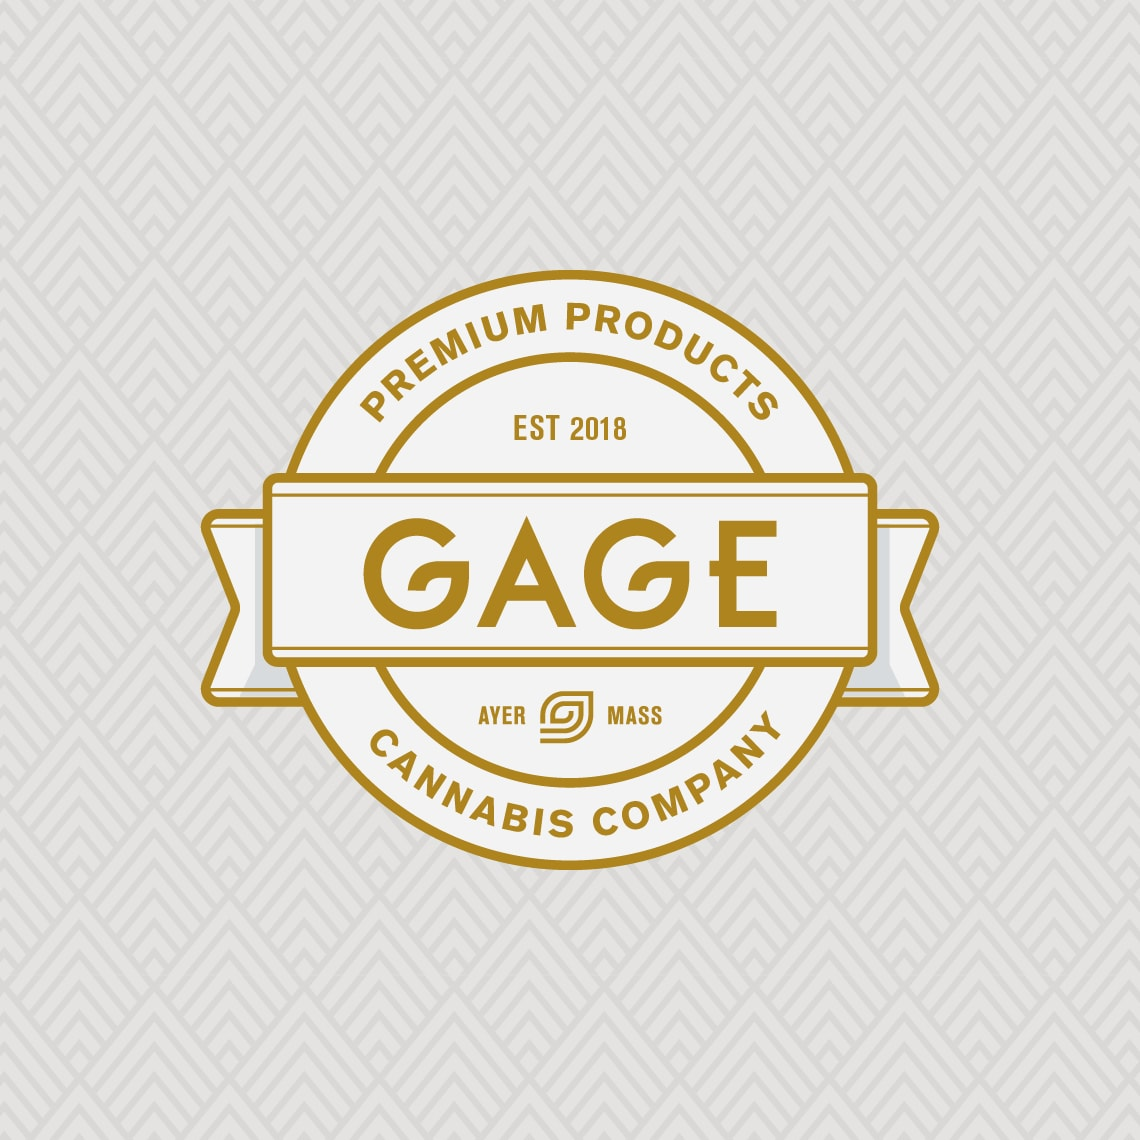 Gage Cannabis badge style logo design example